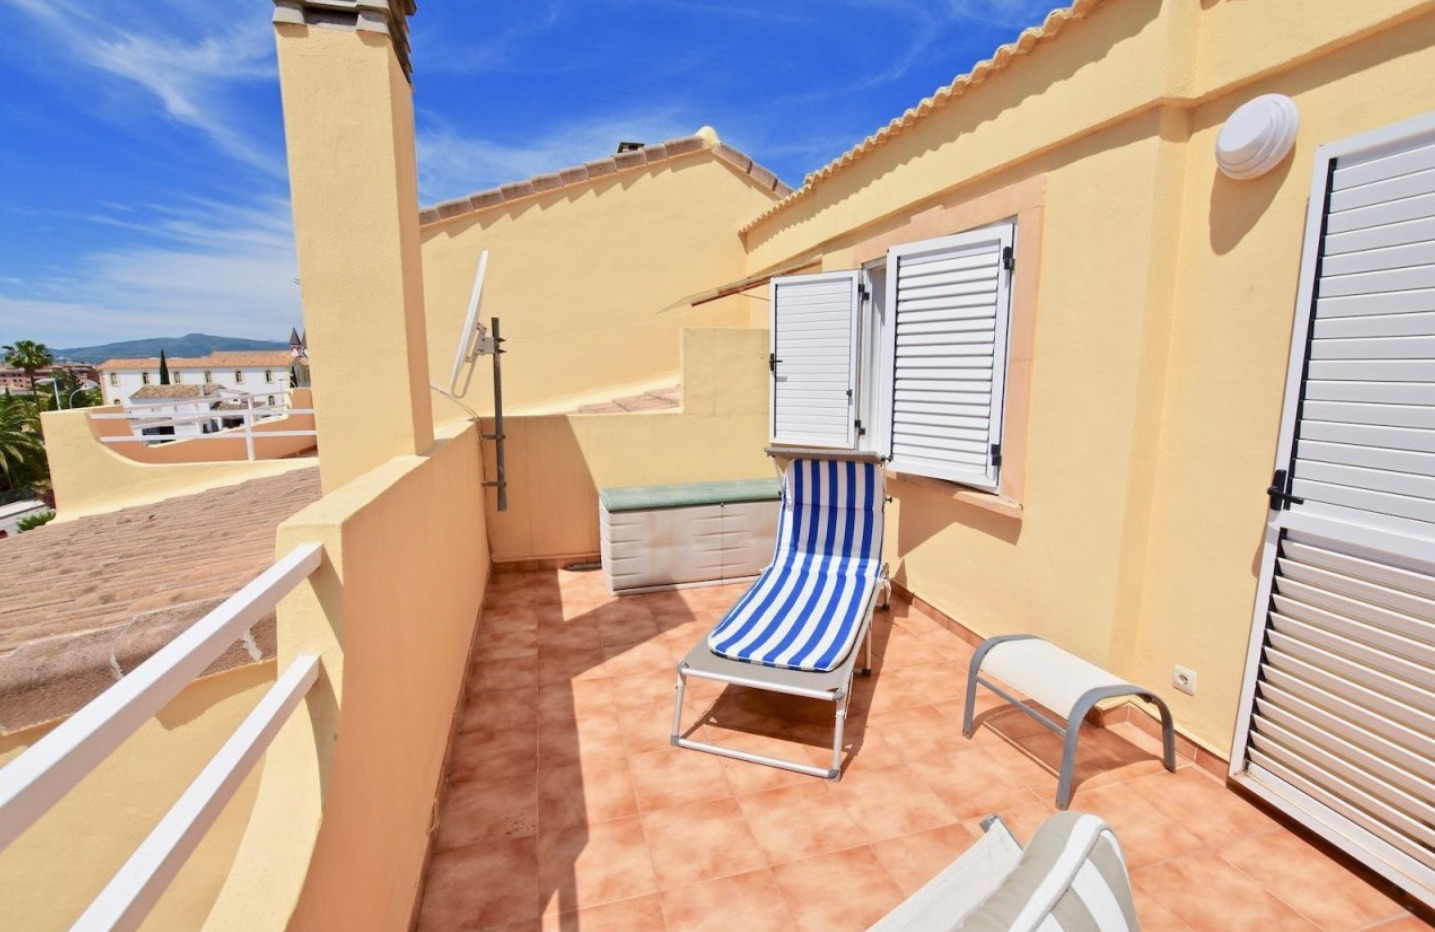 Spacious 4 bedroom duplex apartment - Property Owners ...